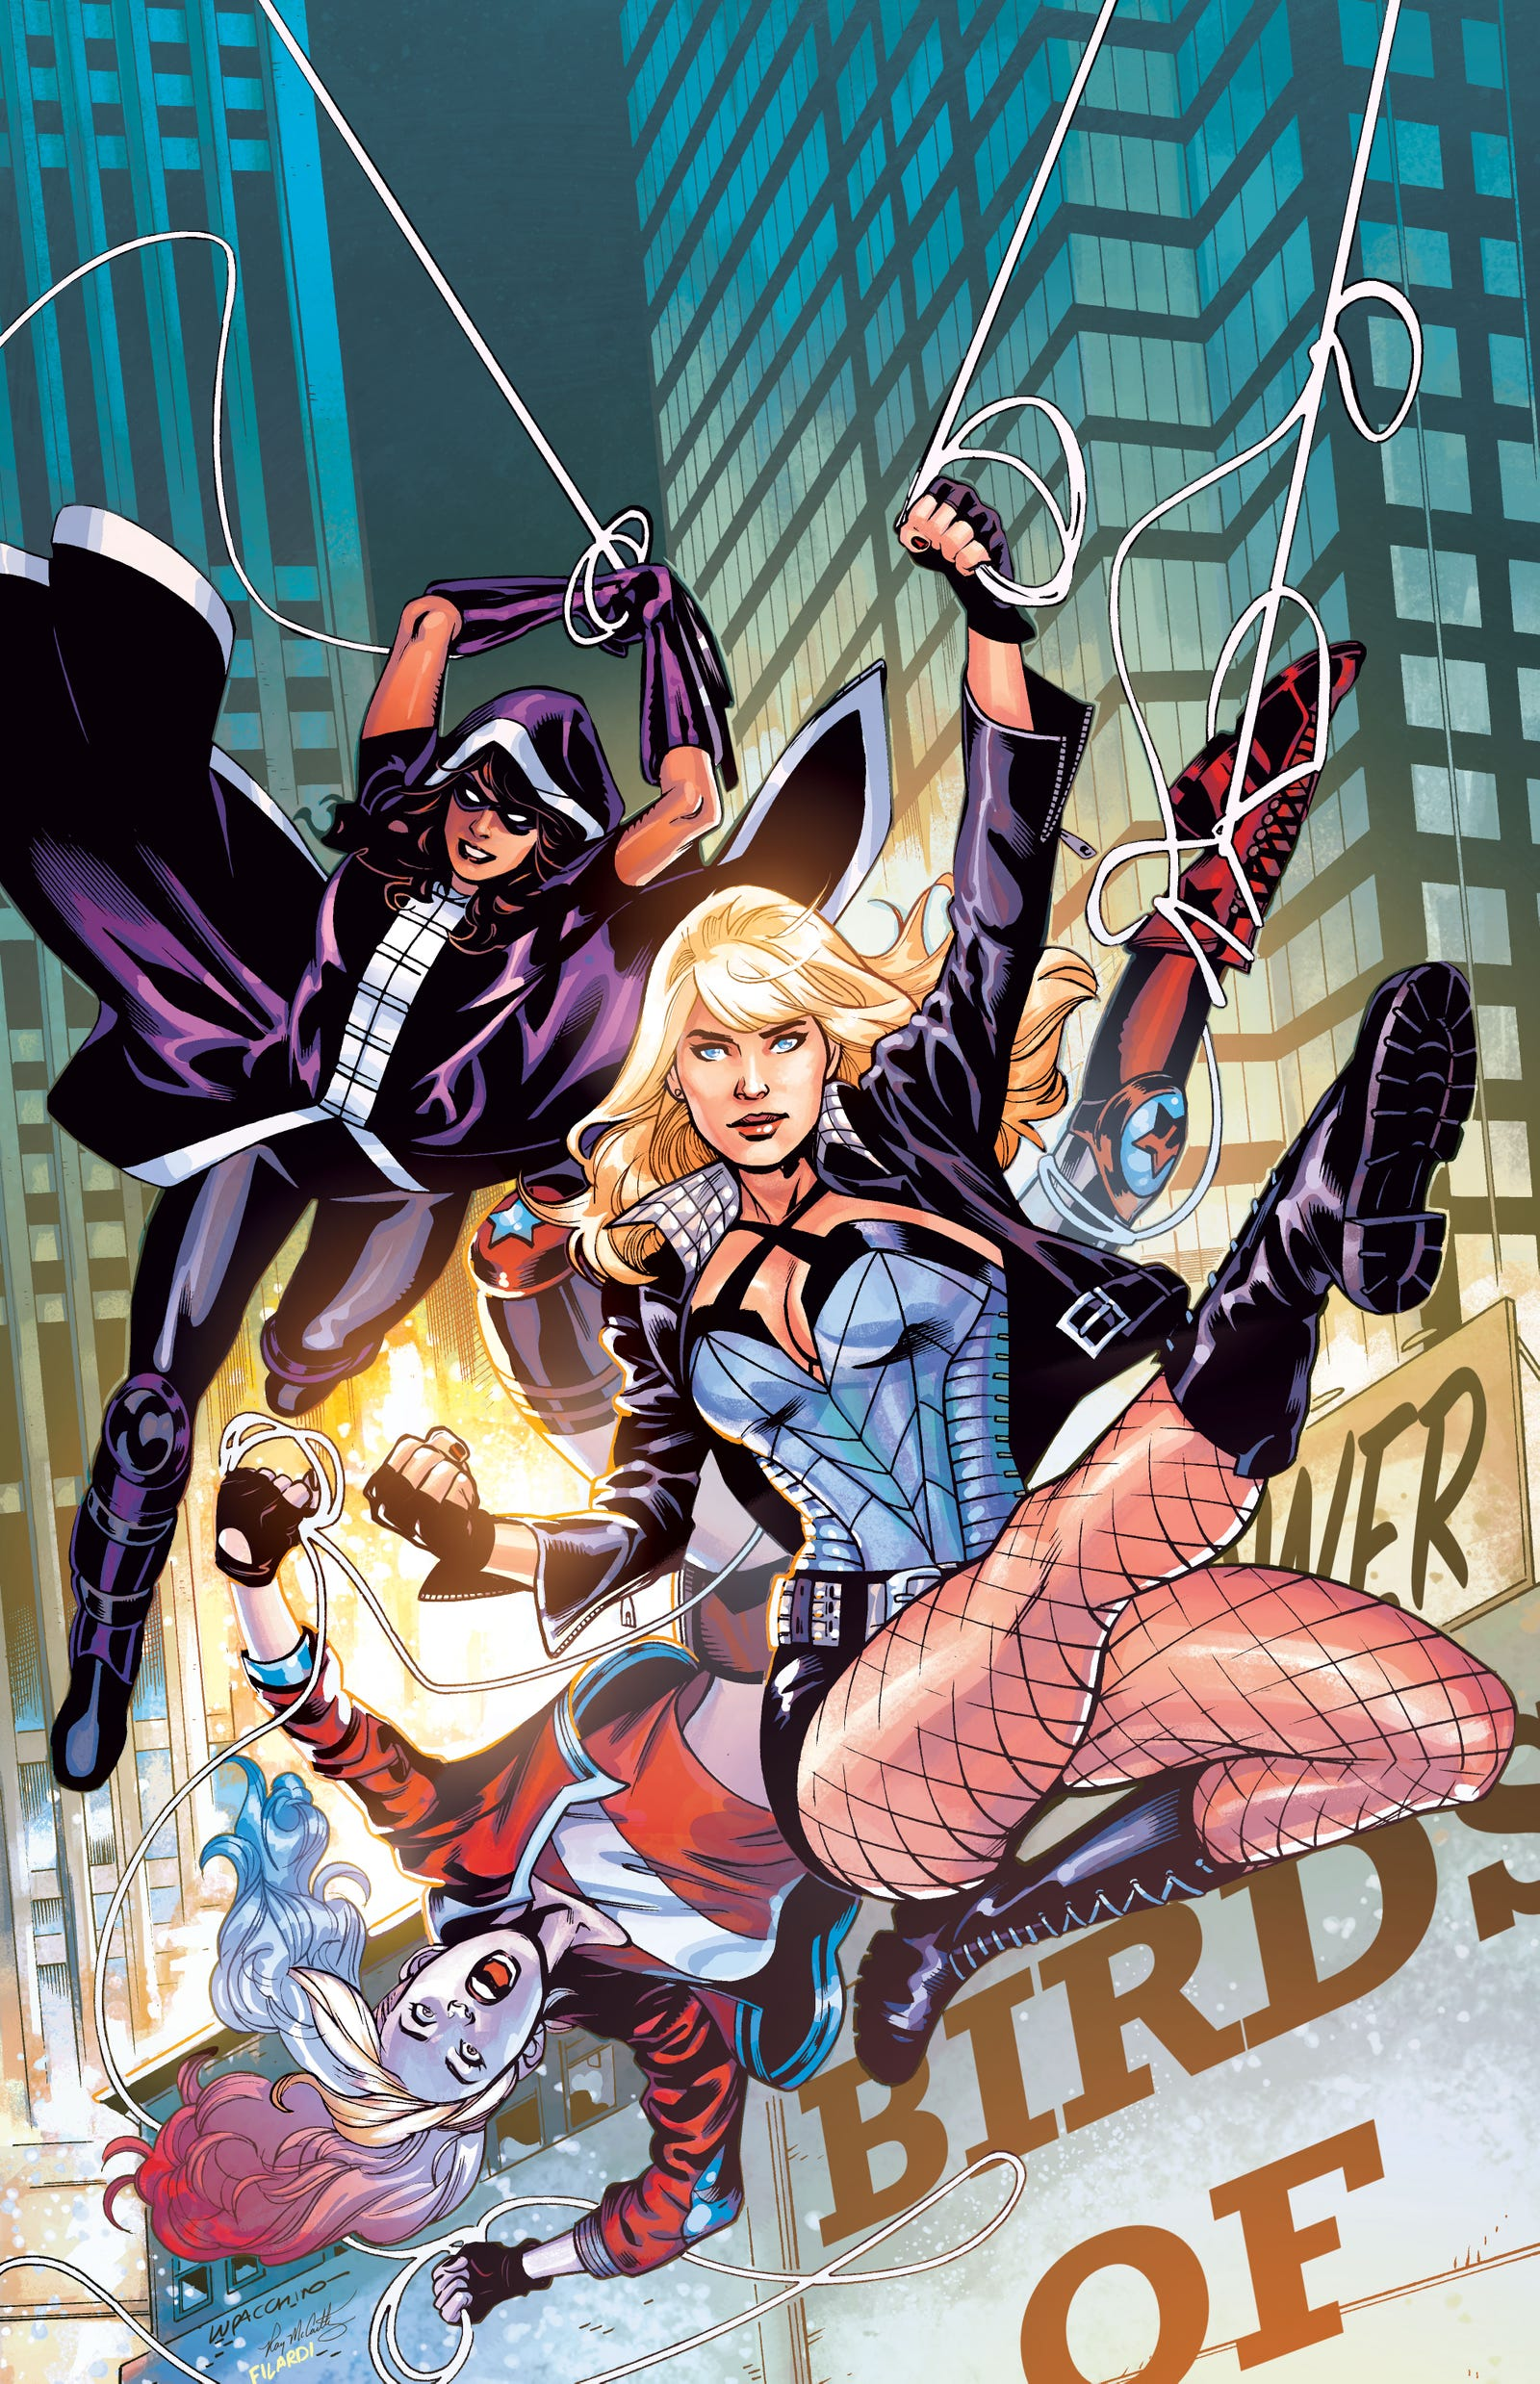 The full main cover for Birds of Prey #1